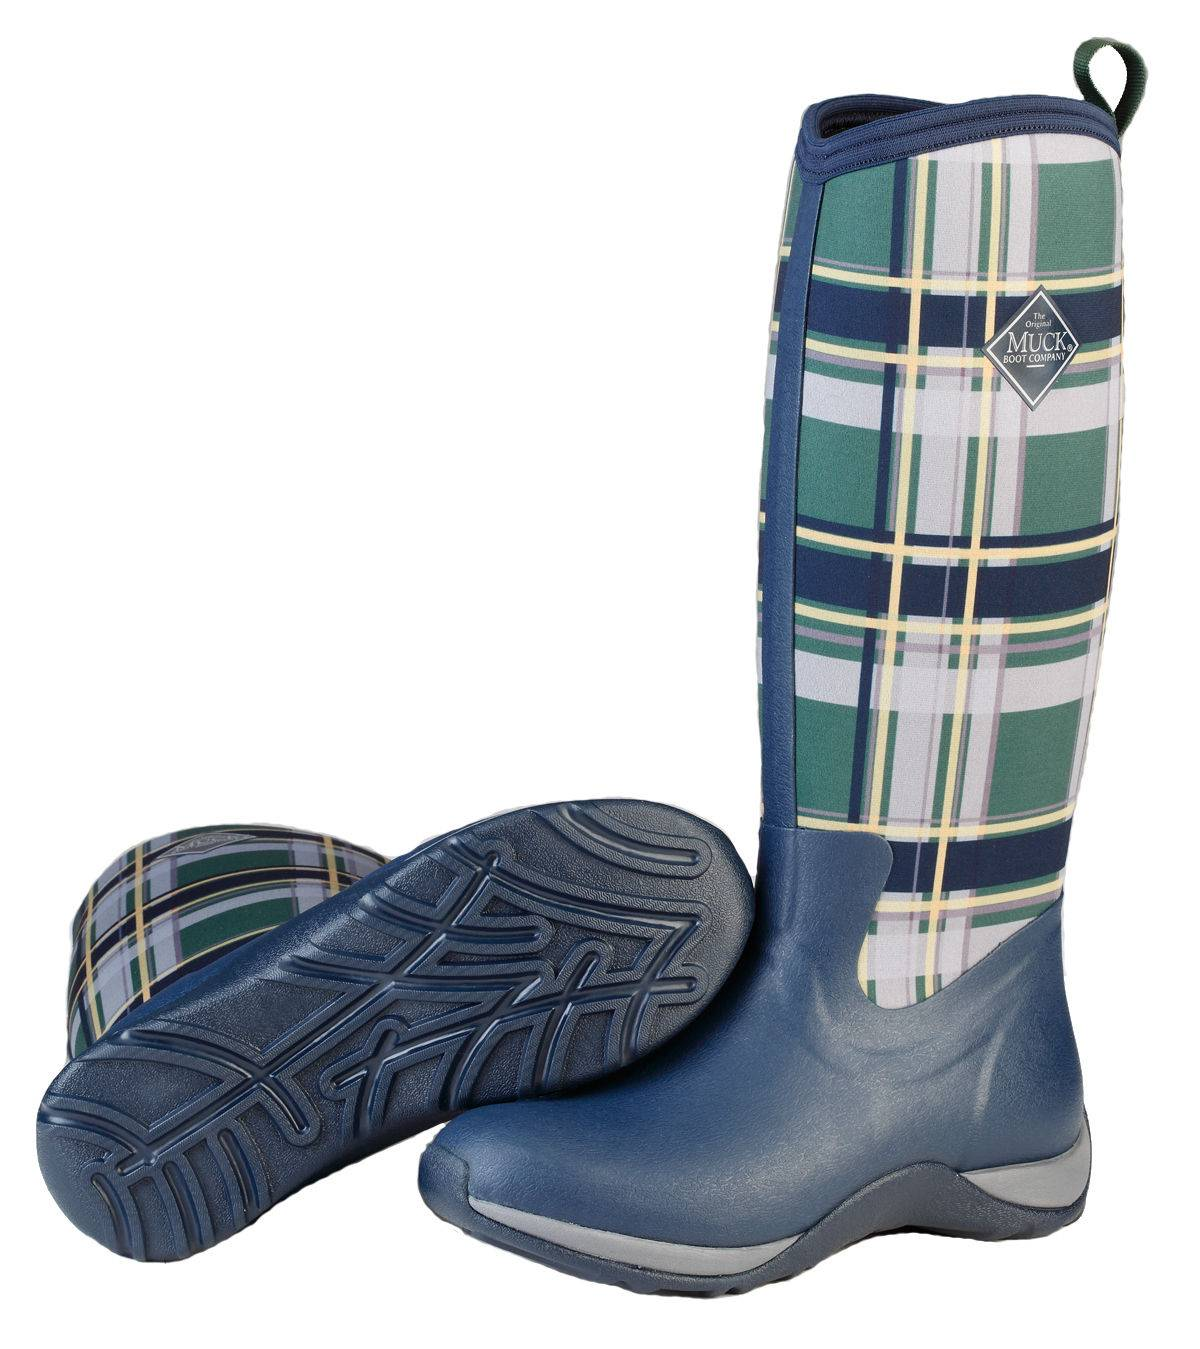 Muck Boots Women's Arctic Adventure - Navy/Green Plaid